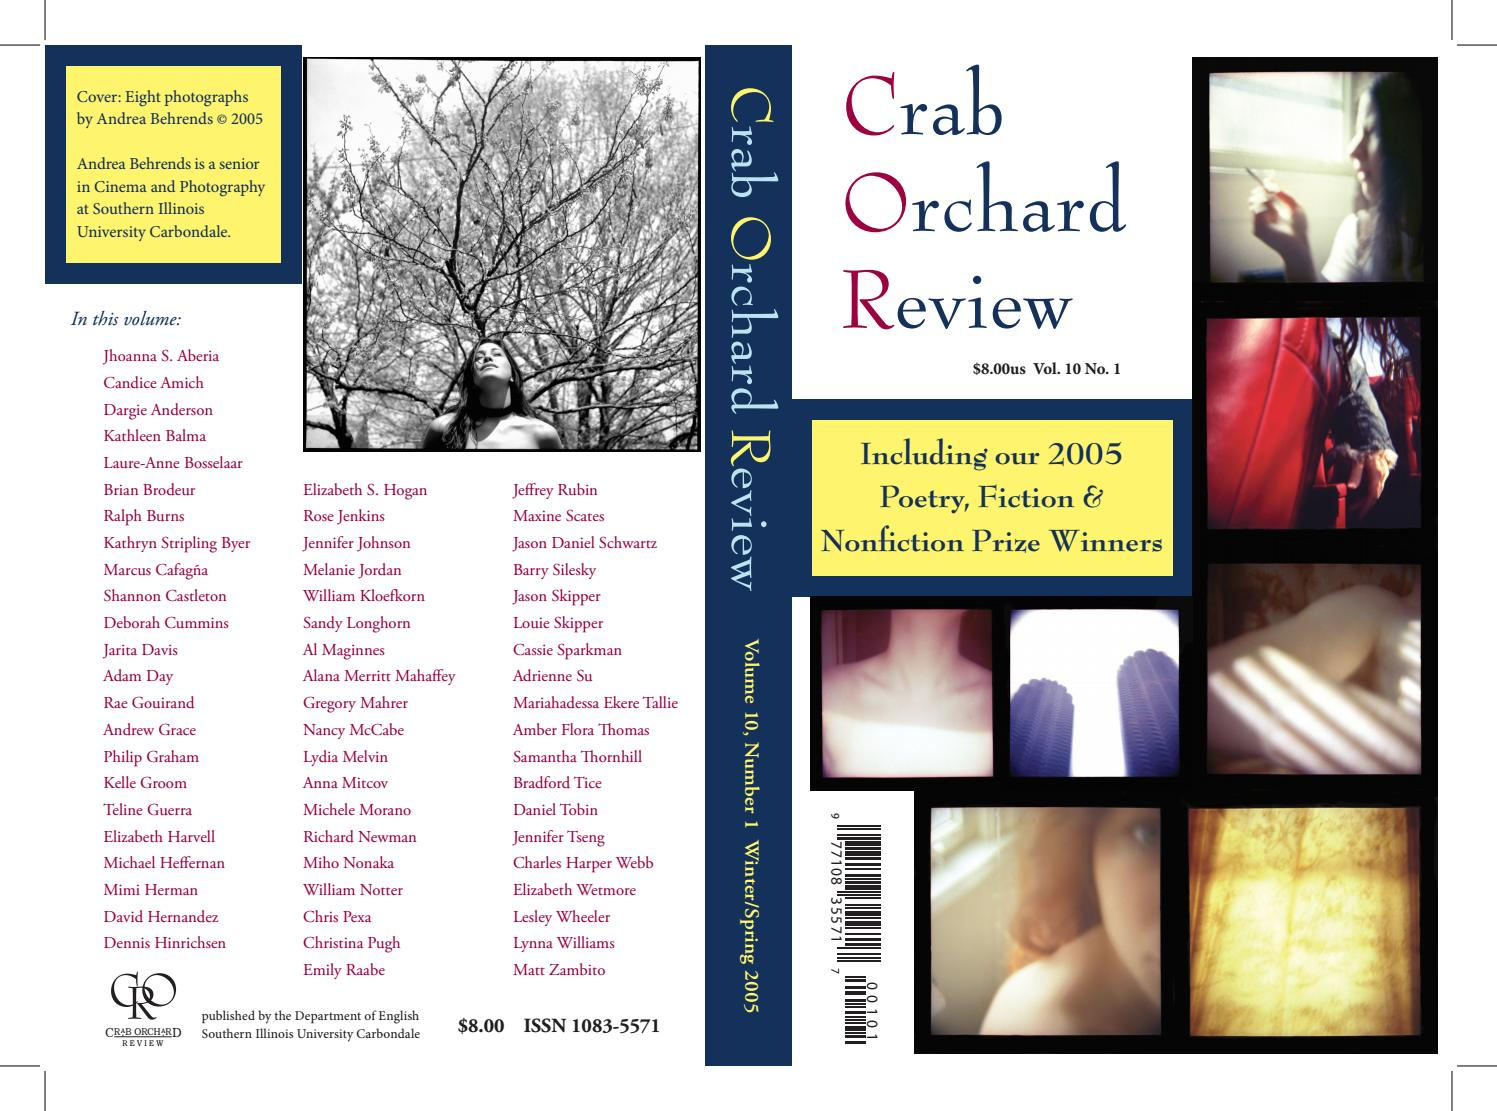 Crab Orchard Review Vol 10 No 1 W/S 2005 by Crab Orchard Review - issuu